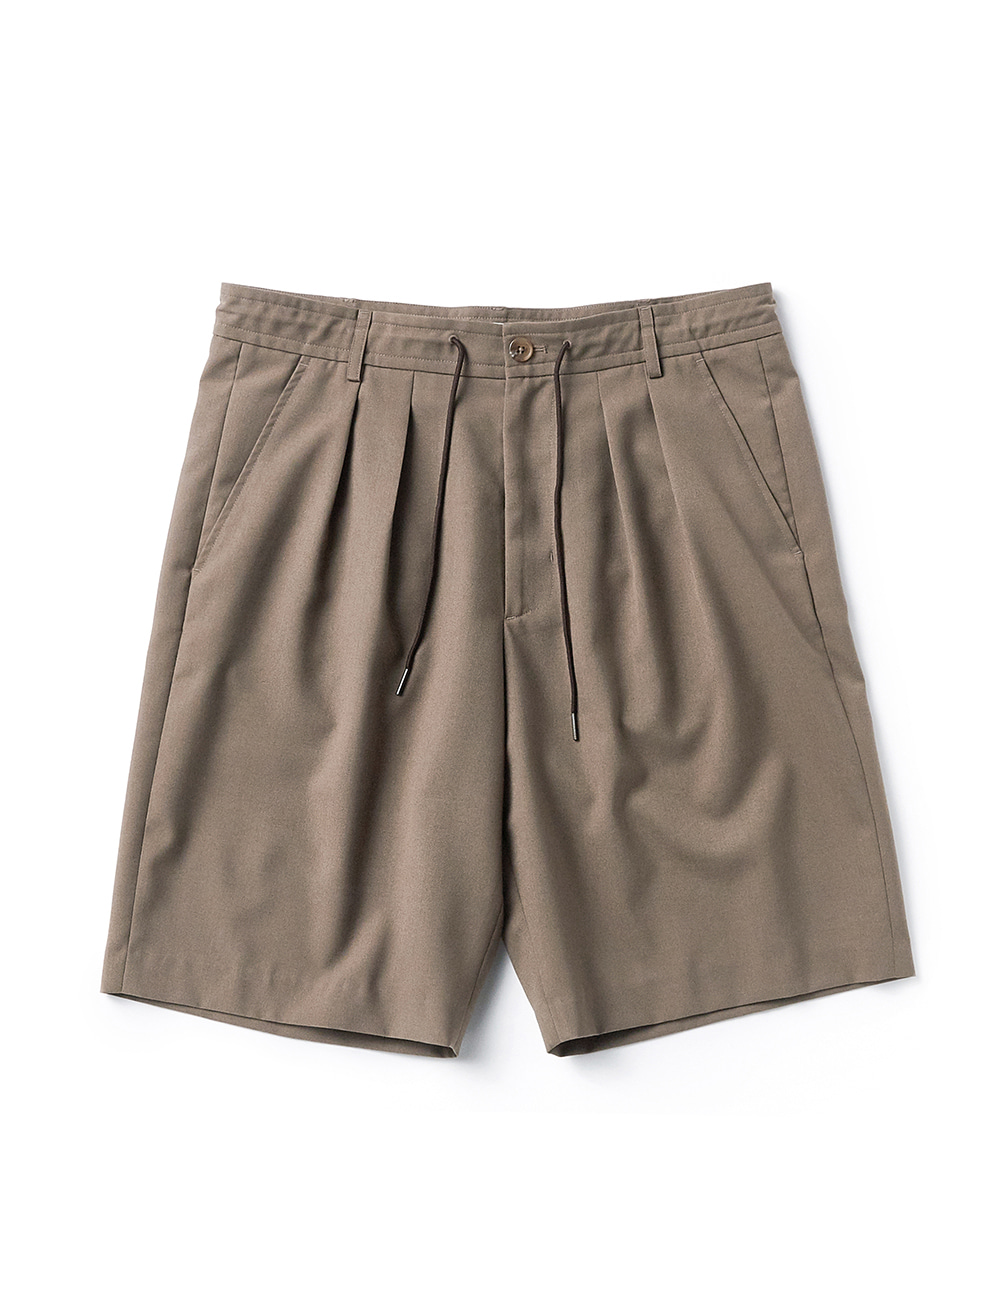 [ESFAI] suc2 tuck wide shorts (Beige)